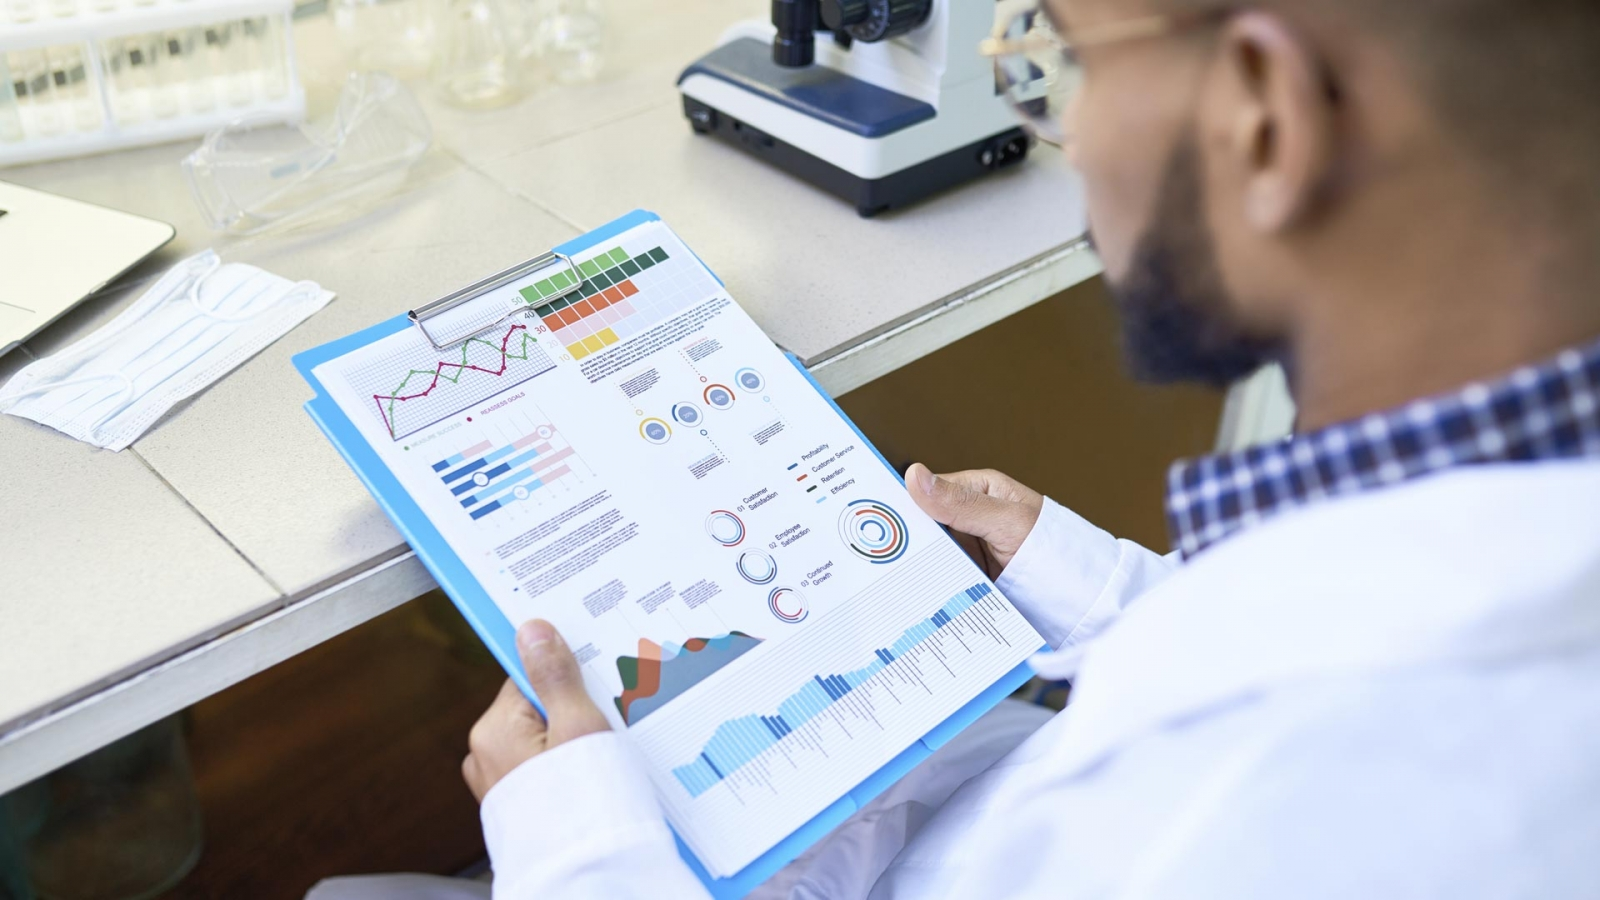 Scientist looking at a medical data report